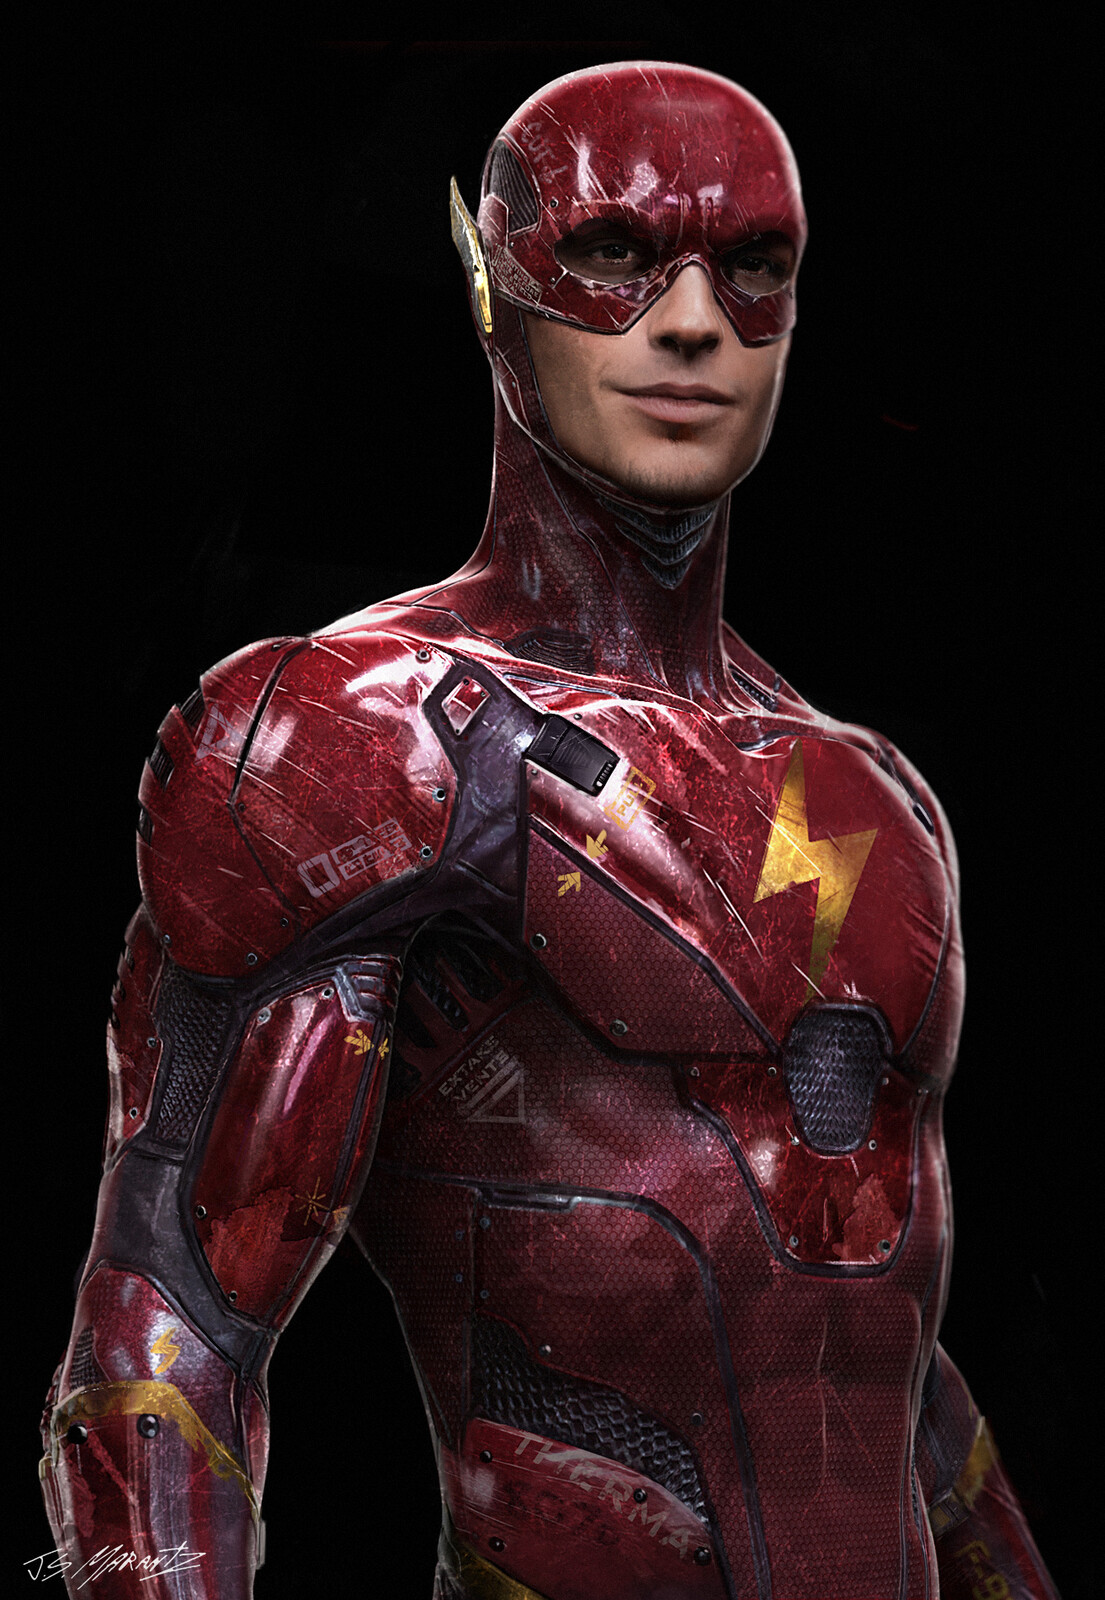 Flash Concept art For BvS and Justice League